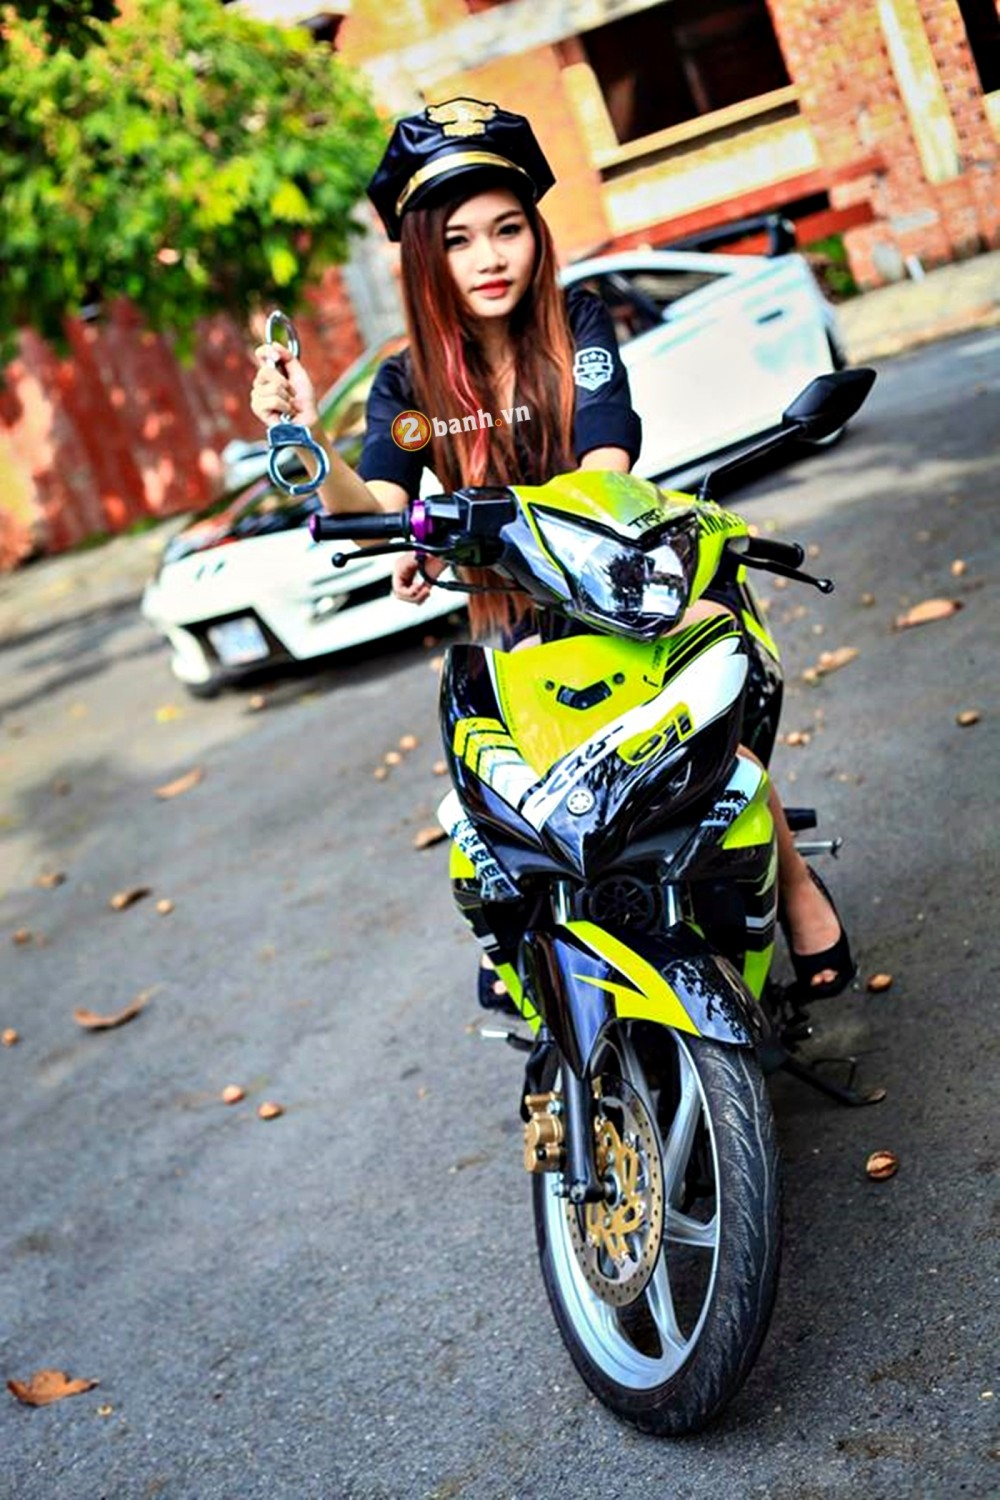 Exciter phien ban Green TRD Legendary do dang cung nu canh sat - 6